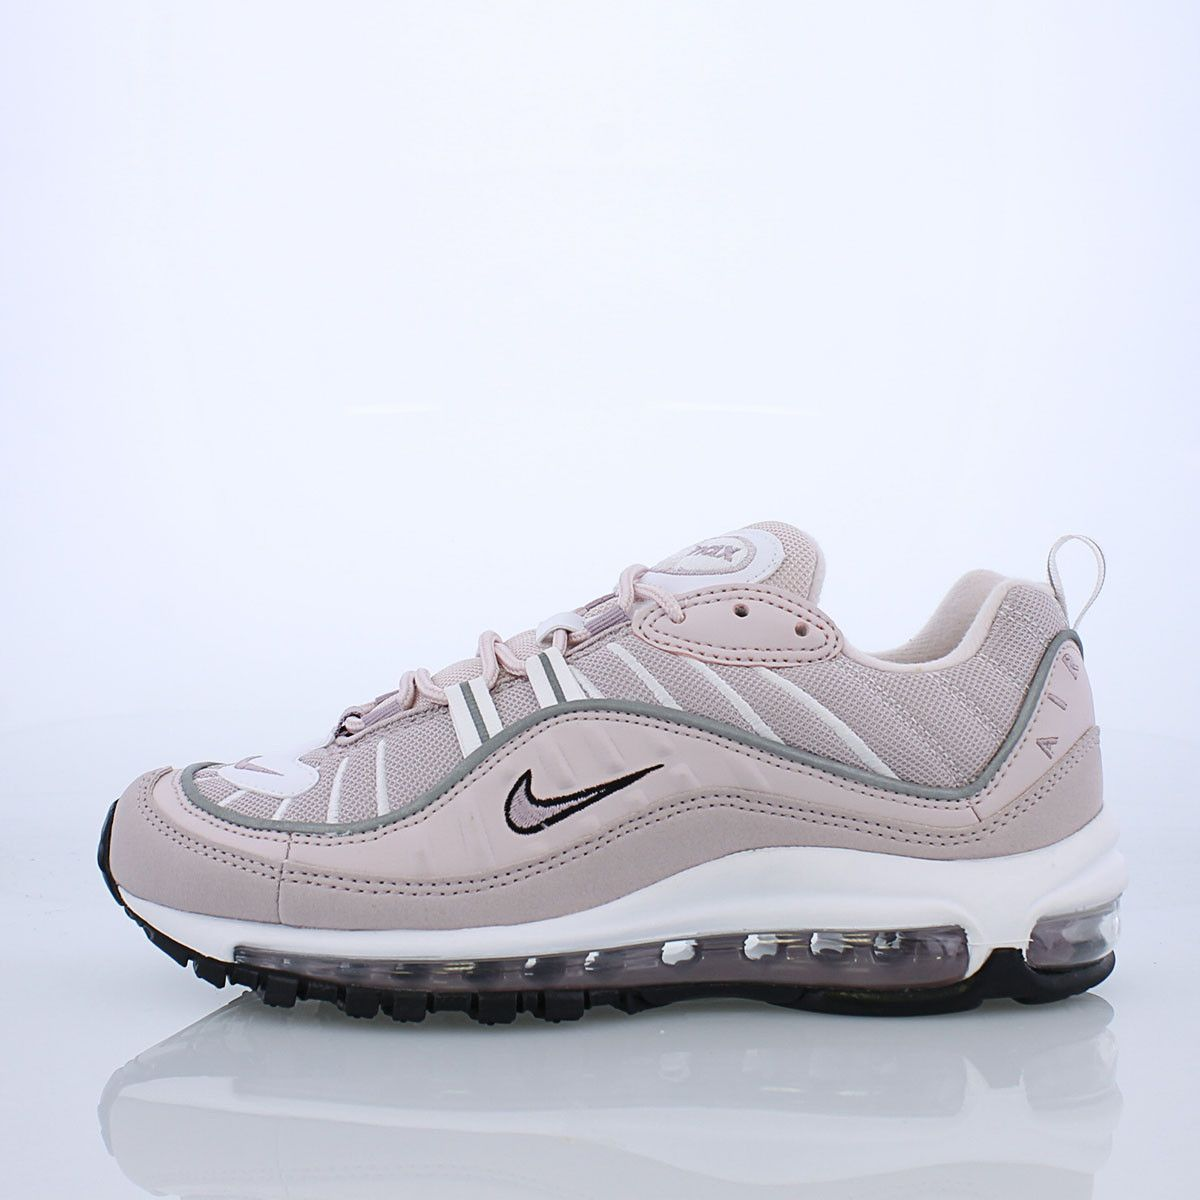 new product 21424 4a295 Nike Air Max 98 (W) | Women's Nike 2018 Collection | Nike ...